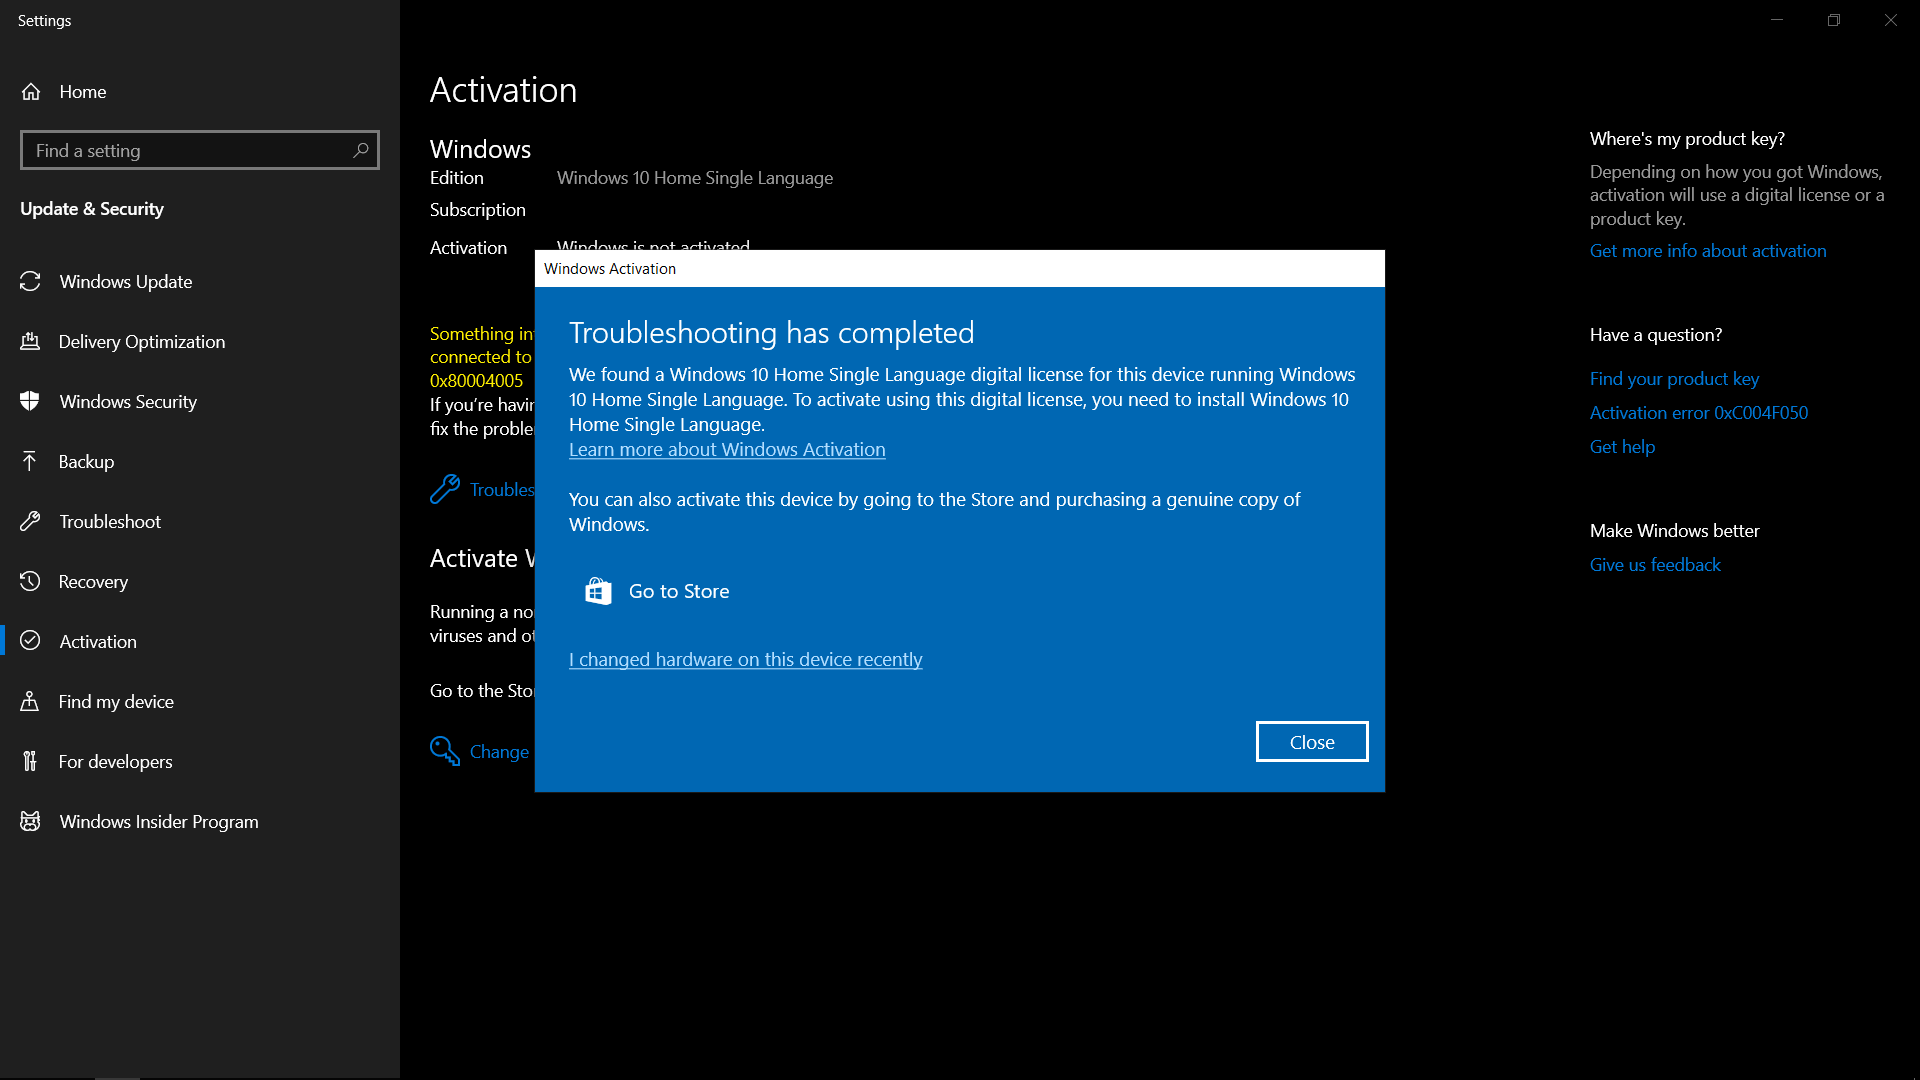 not able to reinstall windows 10 home single language after